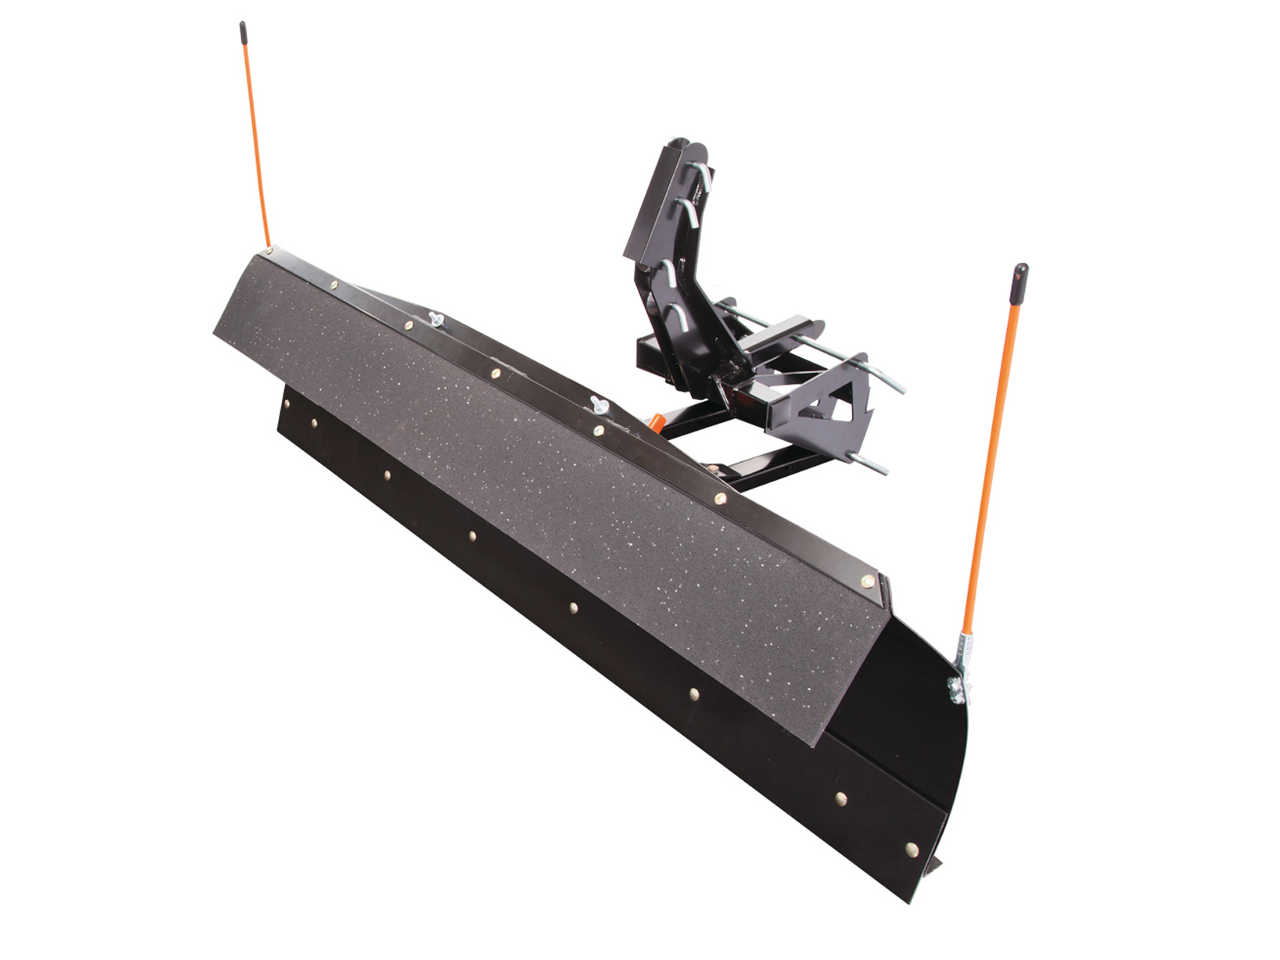 atv and utv snow plow buyer s guide atv illustrated no drilling or cutting is required for installation and once in place quick release pins attach and detach the plow blade and base assembly in a matter of